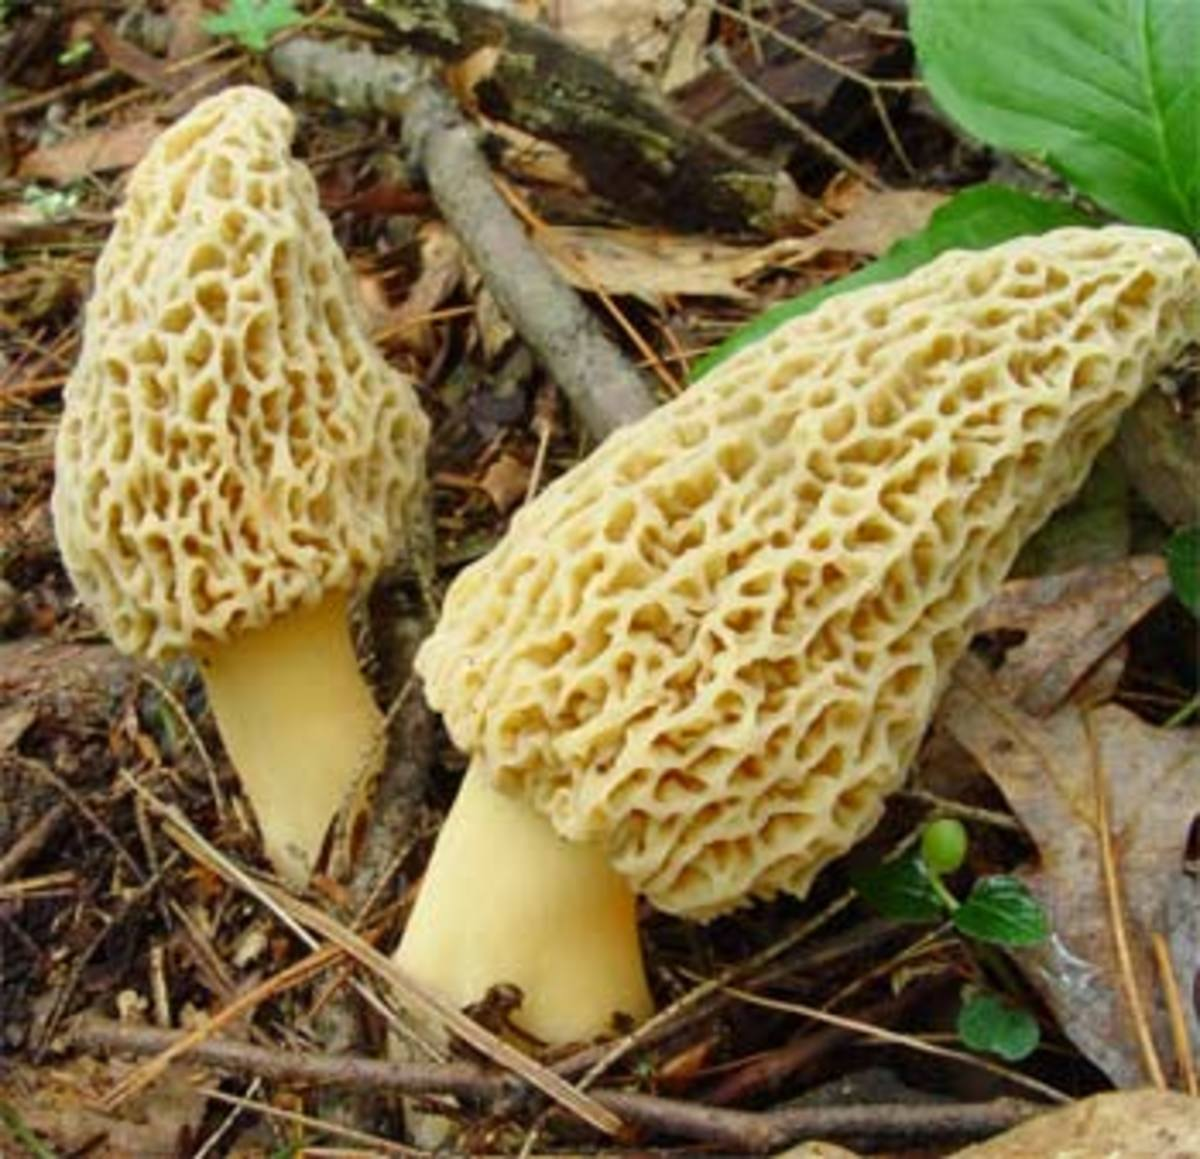 Morchella or Morel Mushrooms